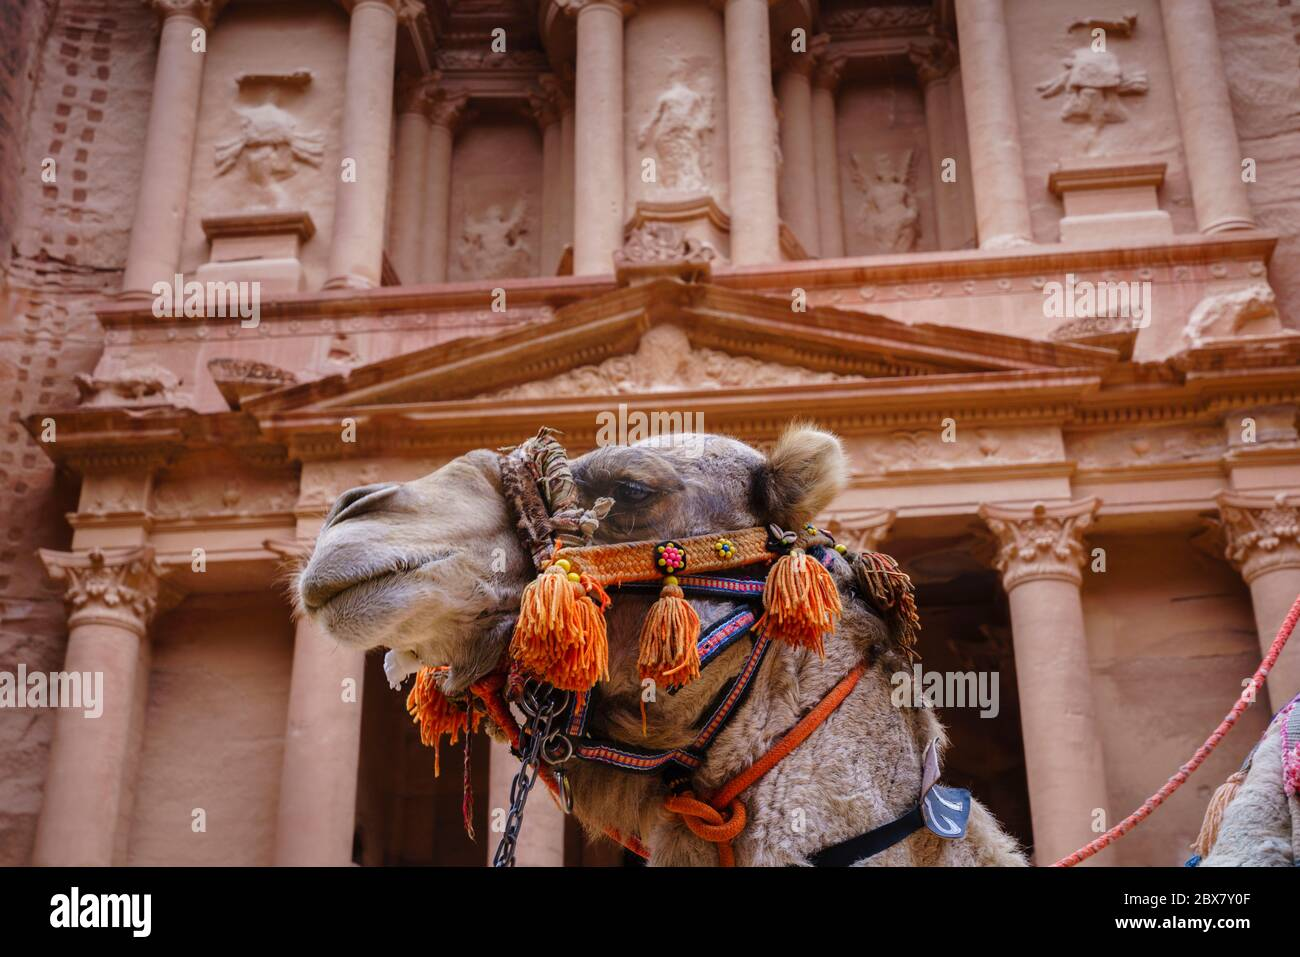 Camel in front of The Treasury in Petra, Jordan Stock Photo